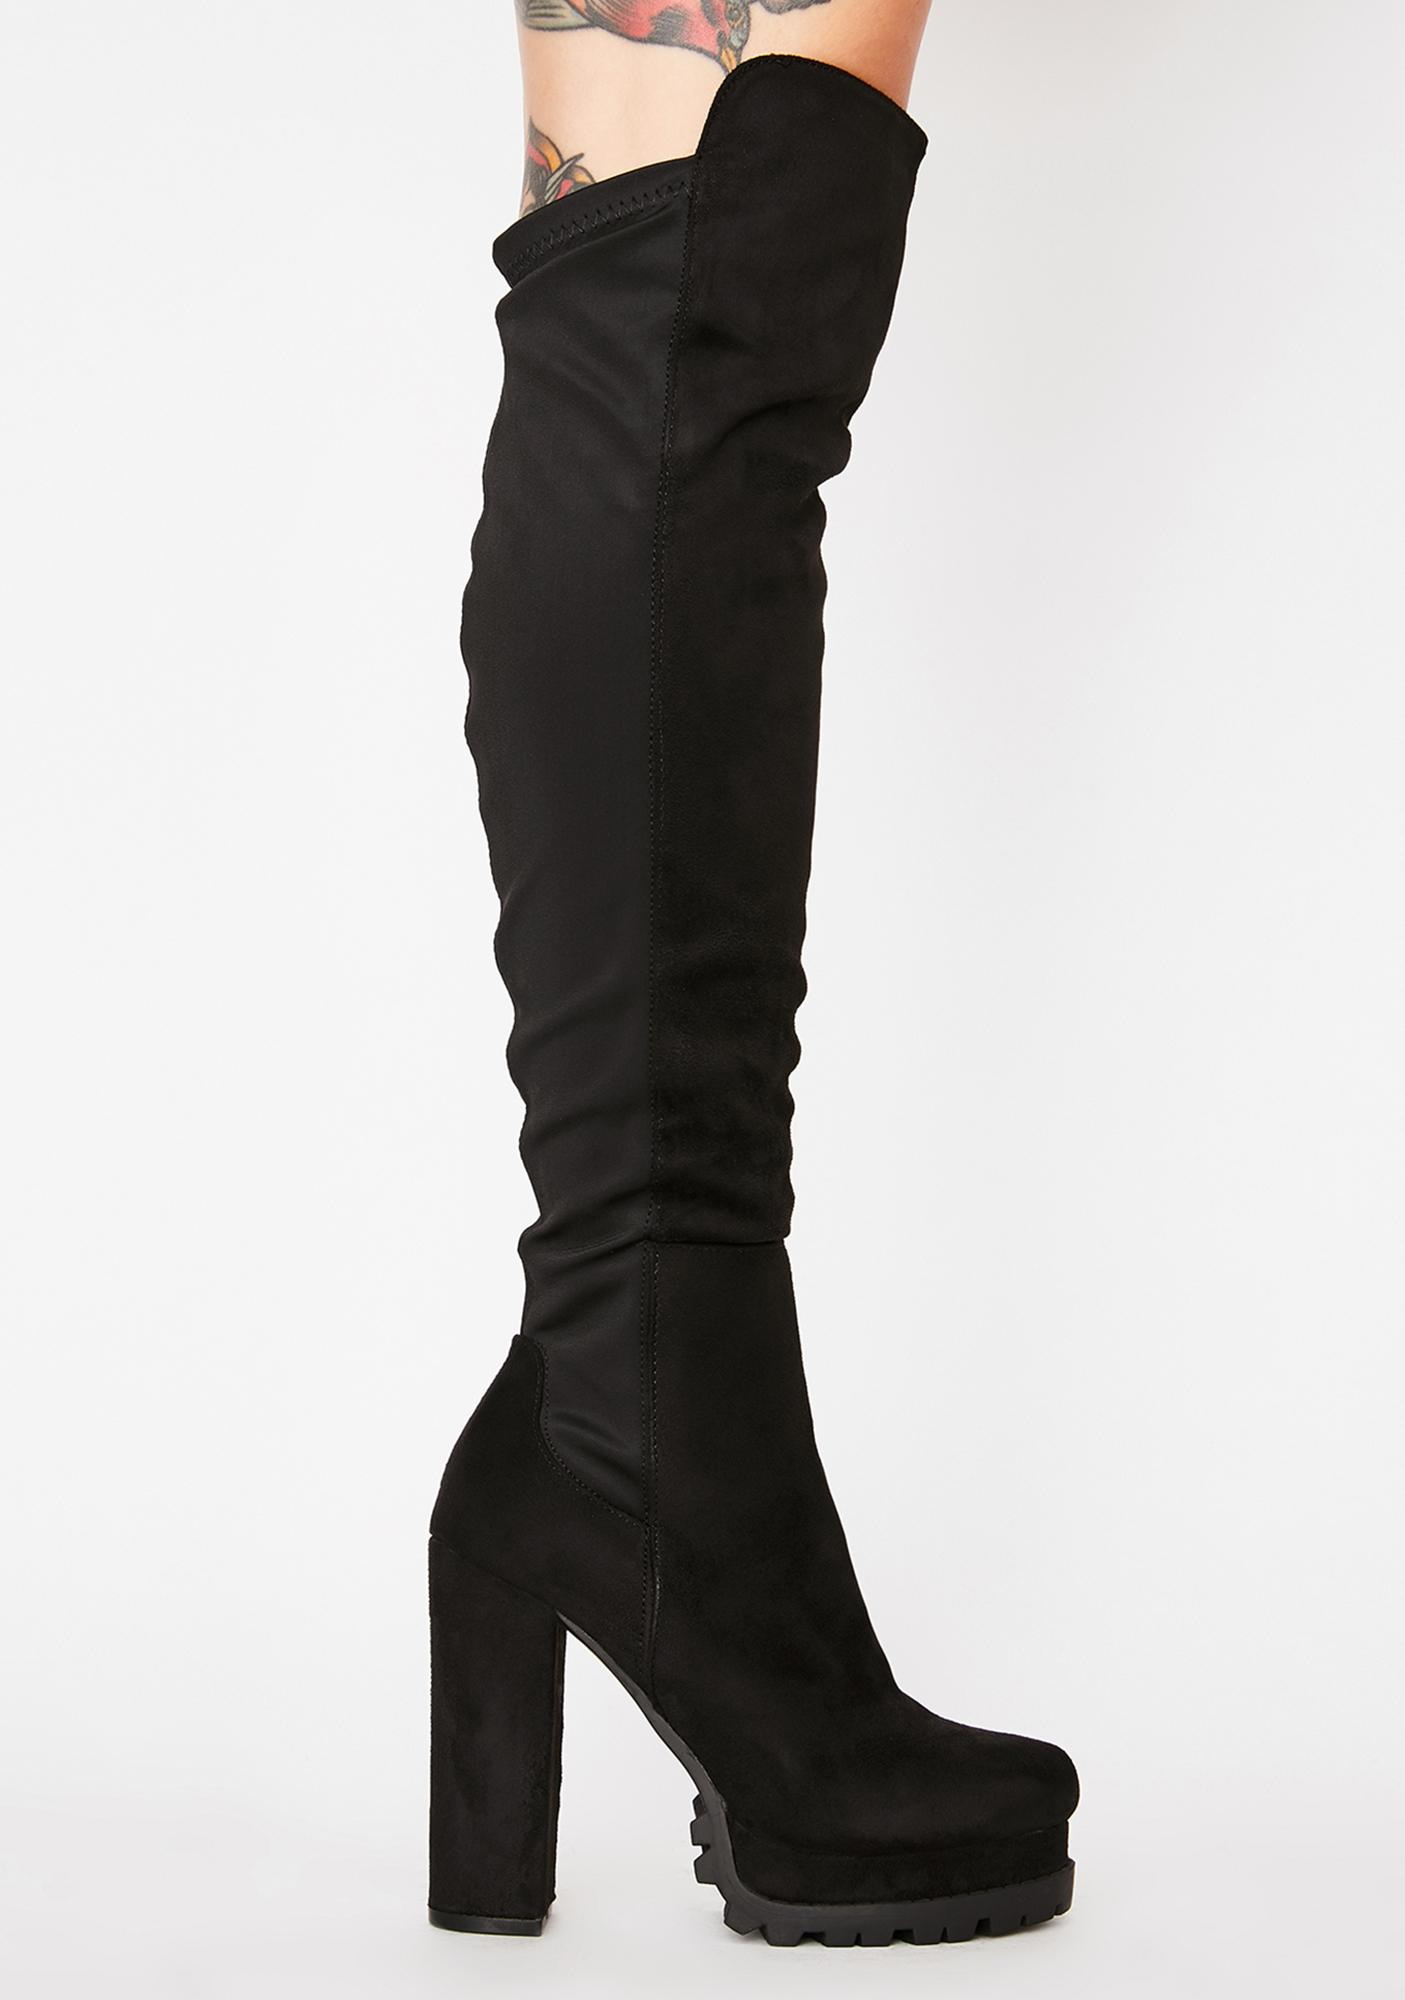 Riding Rowdy Platform Boots by